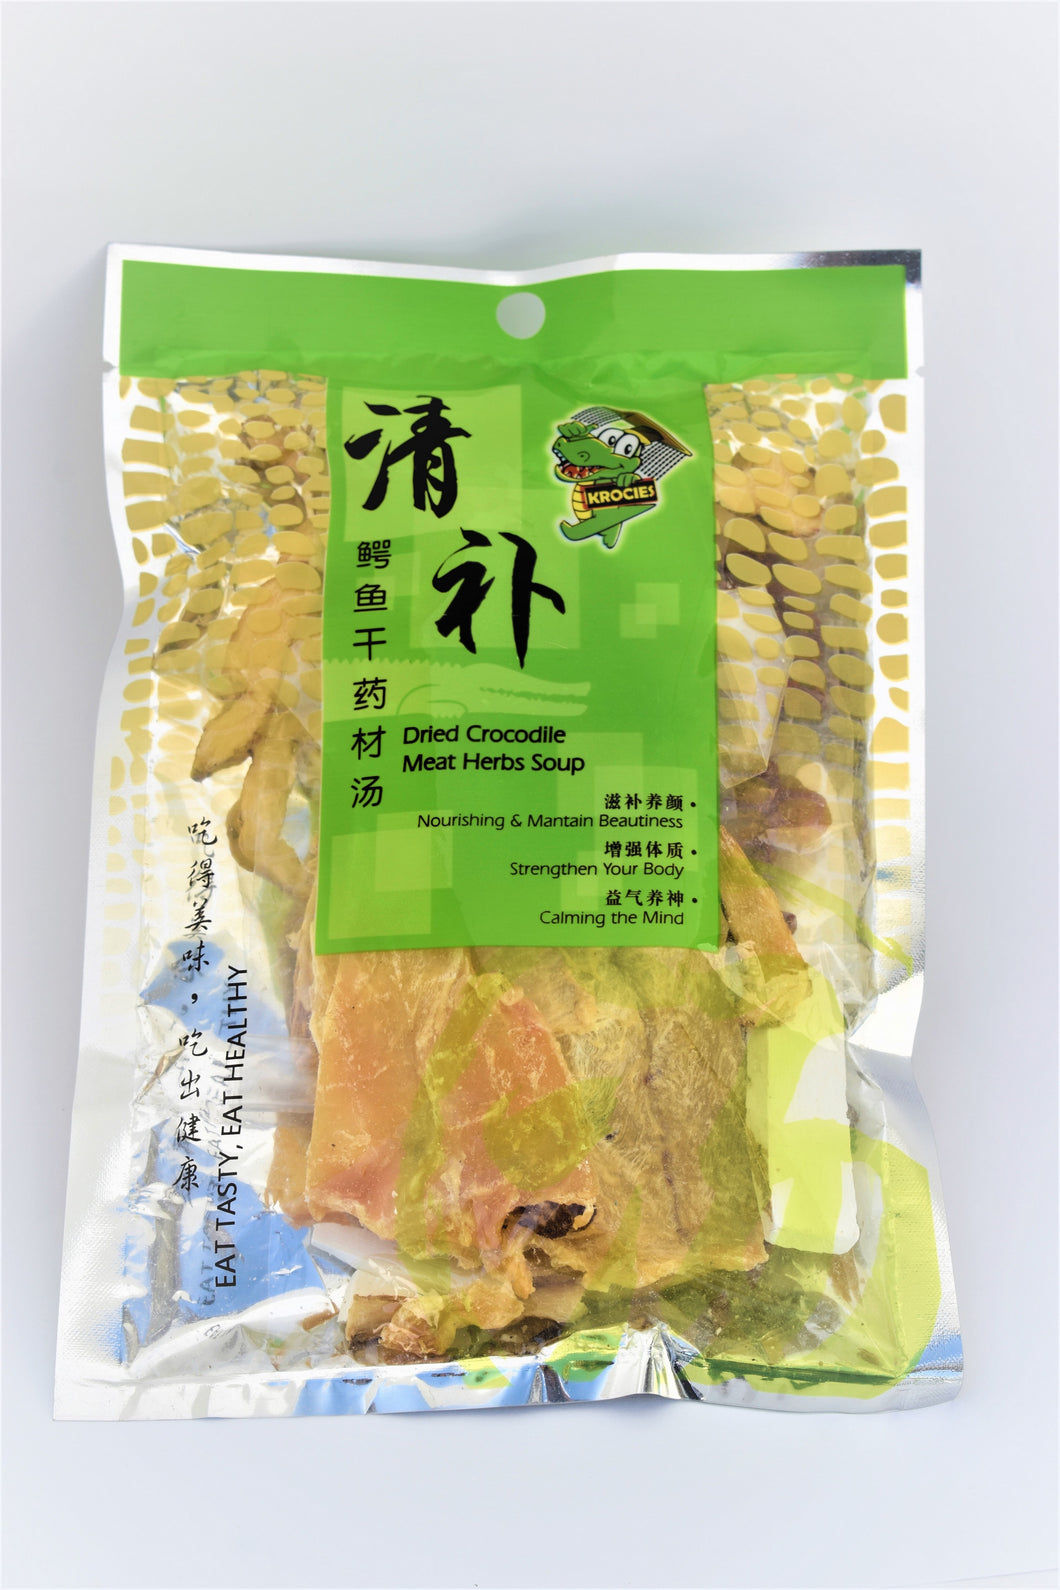 Qing Bu Dried Crocodile Meat Herbs Soup - Keep your family healthy